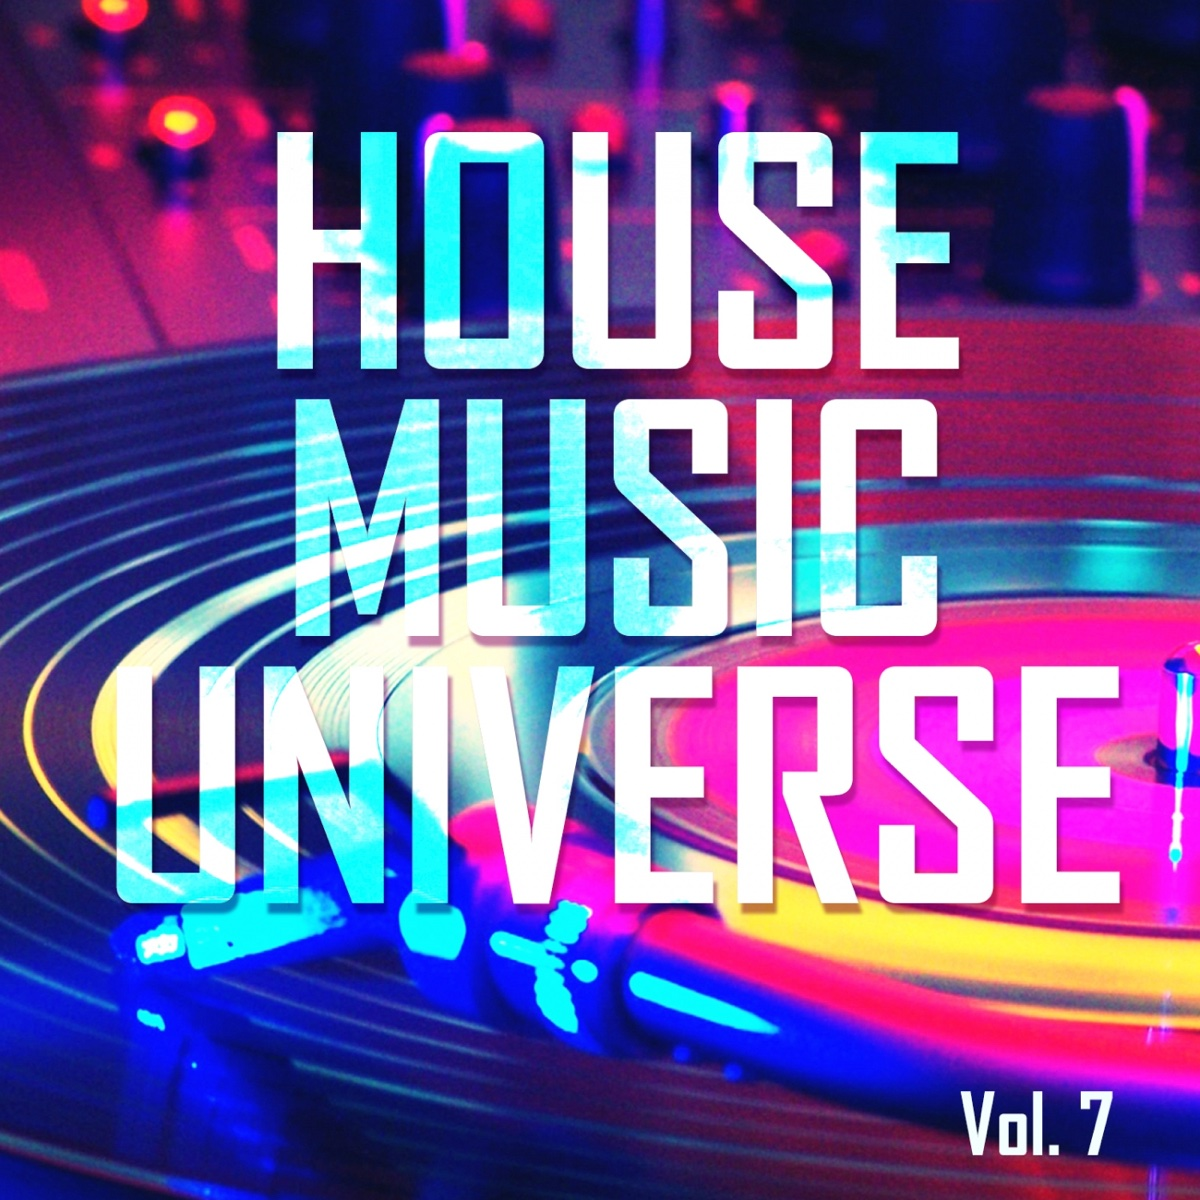 Themusic today cover art house music universe vol 7 by for House music singers